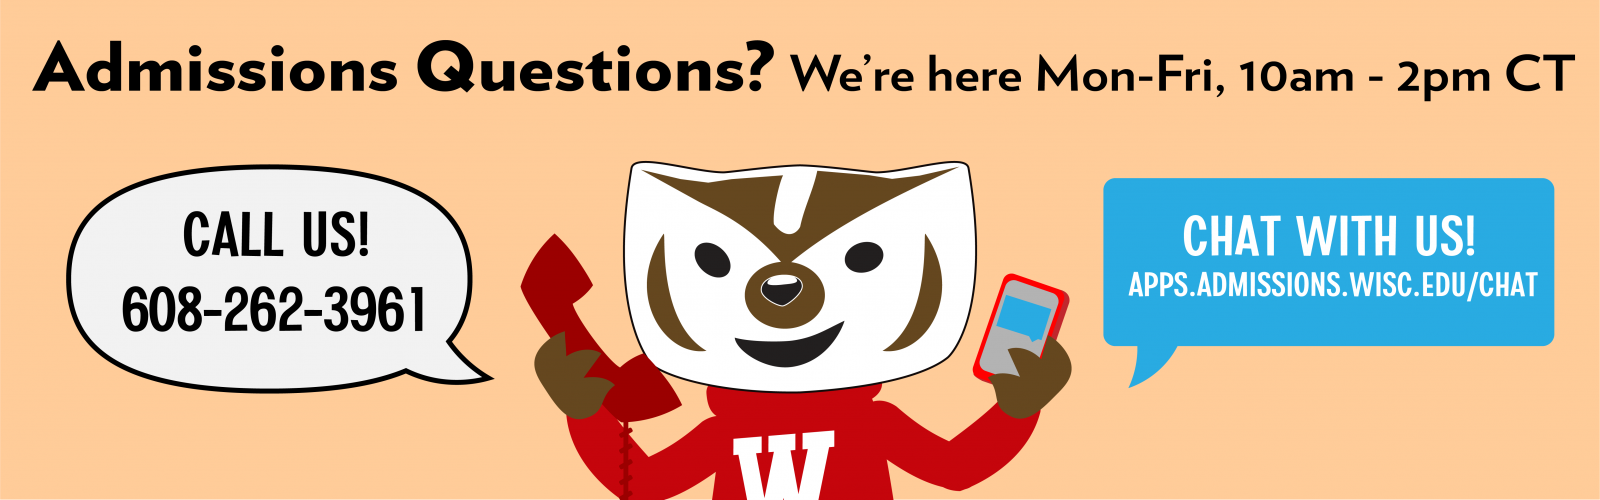 Admissions Questions? Call or chat us. 10:00 a.m. to 2:00 p.m. 608-262-3961 or apps.admissions.wisc.edu/chat